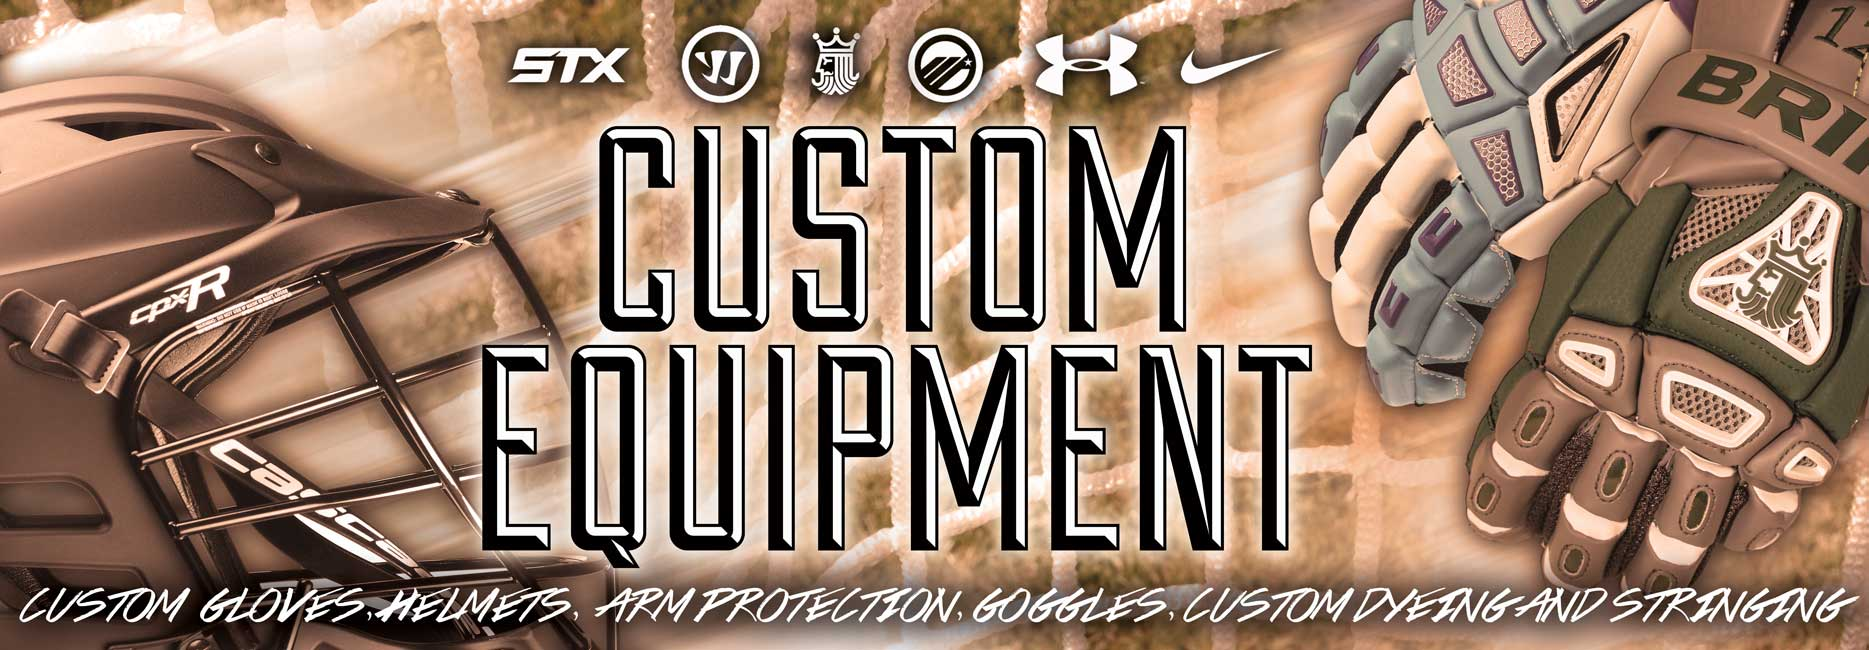 Custom Lacrosse Gloves and Equipment from Lacrosse Unlimited